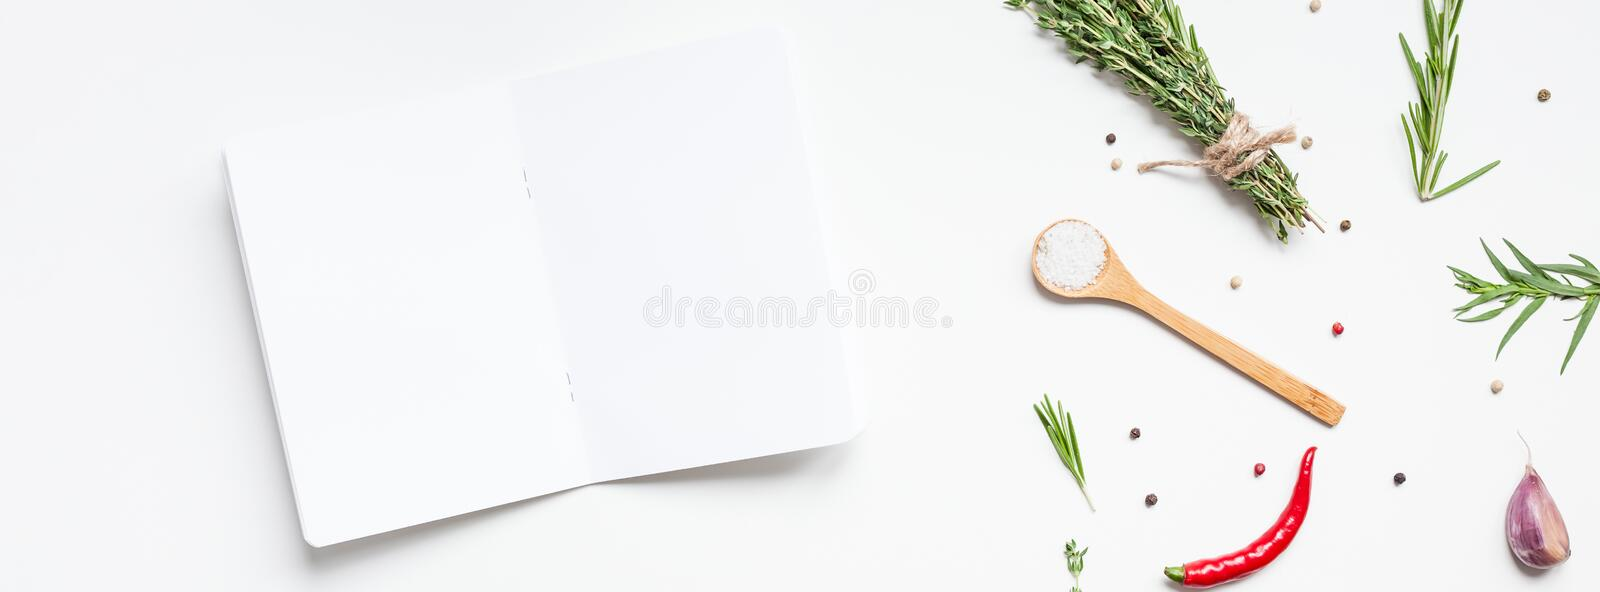 Blank notepad pages with greens herbs and spices. Flat lay overhead view blank notebook pages mockup text space invitation card on white background with greens royalty free stock images